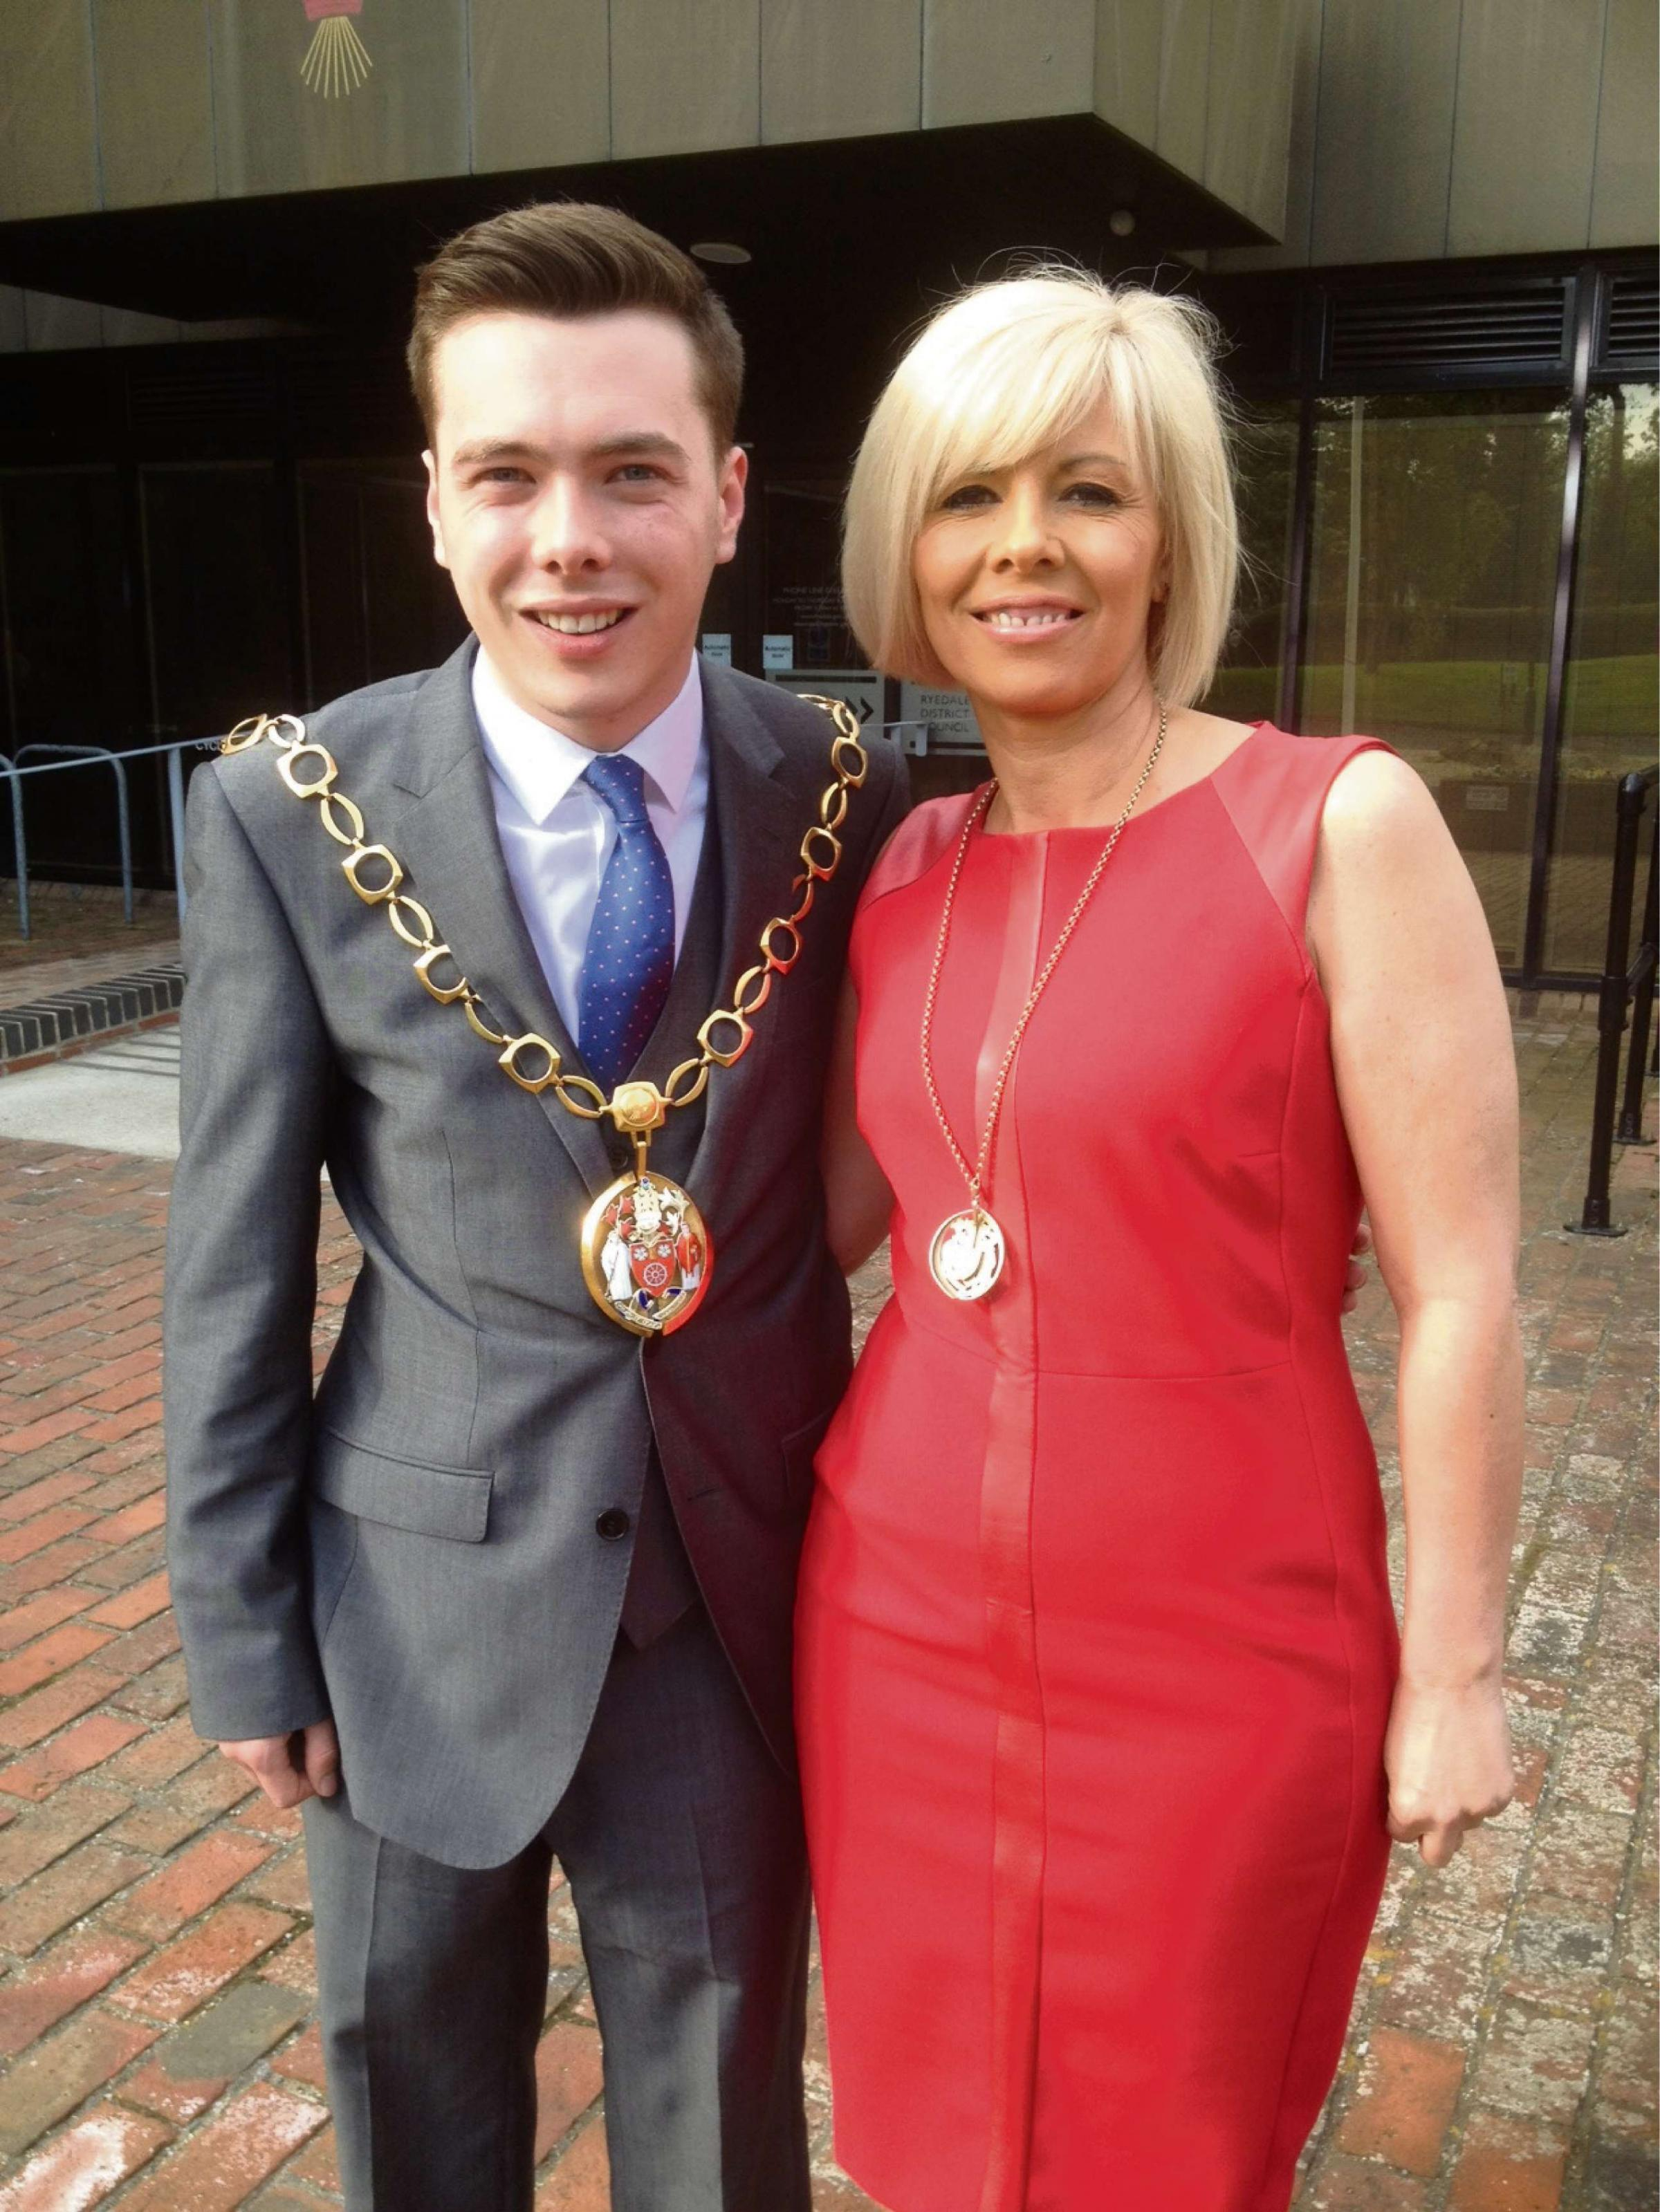 Cllr Luke Ives, 22, with his mum, Louise, who is his consort